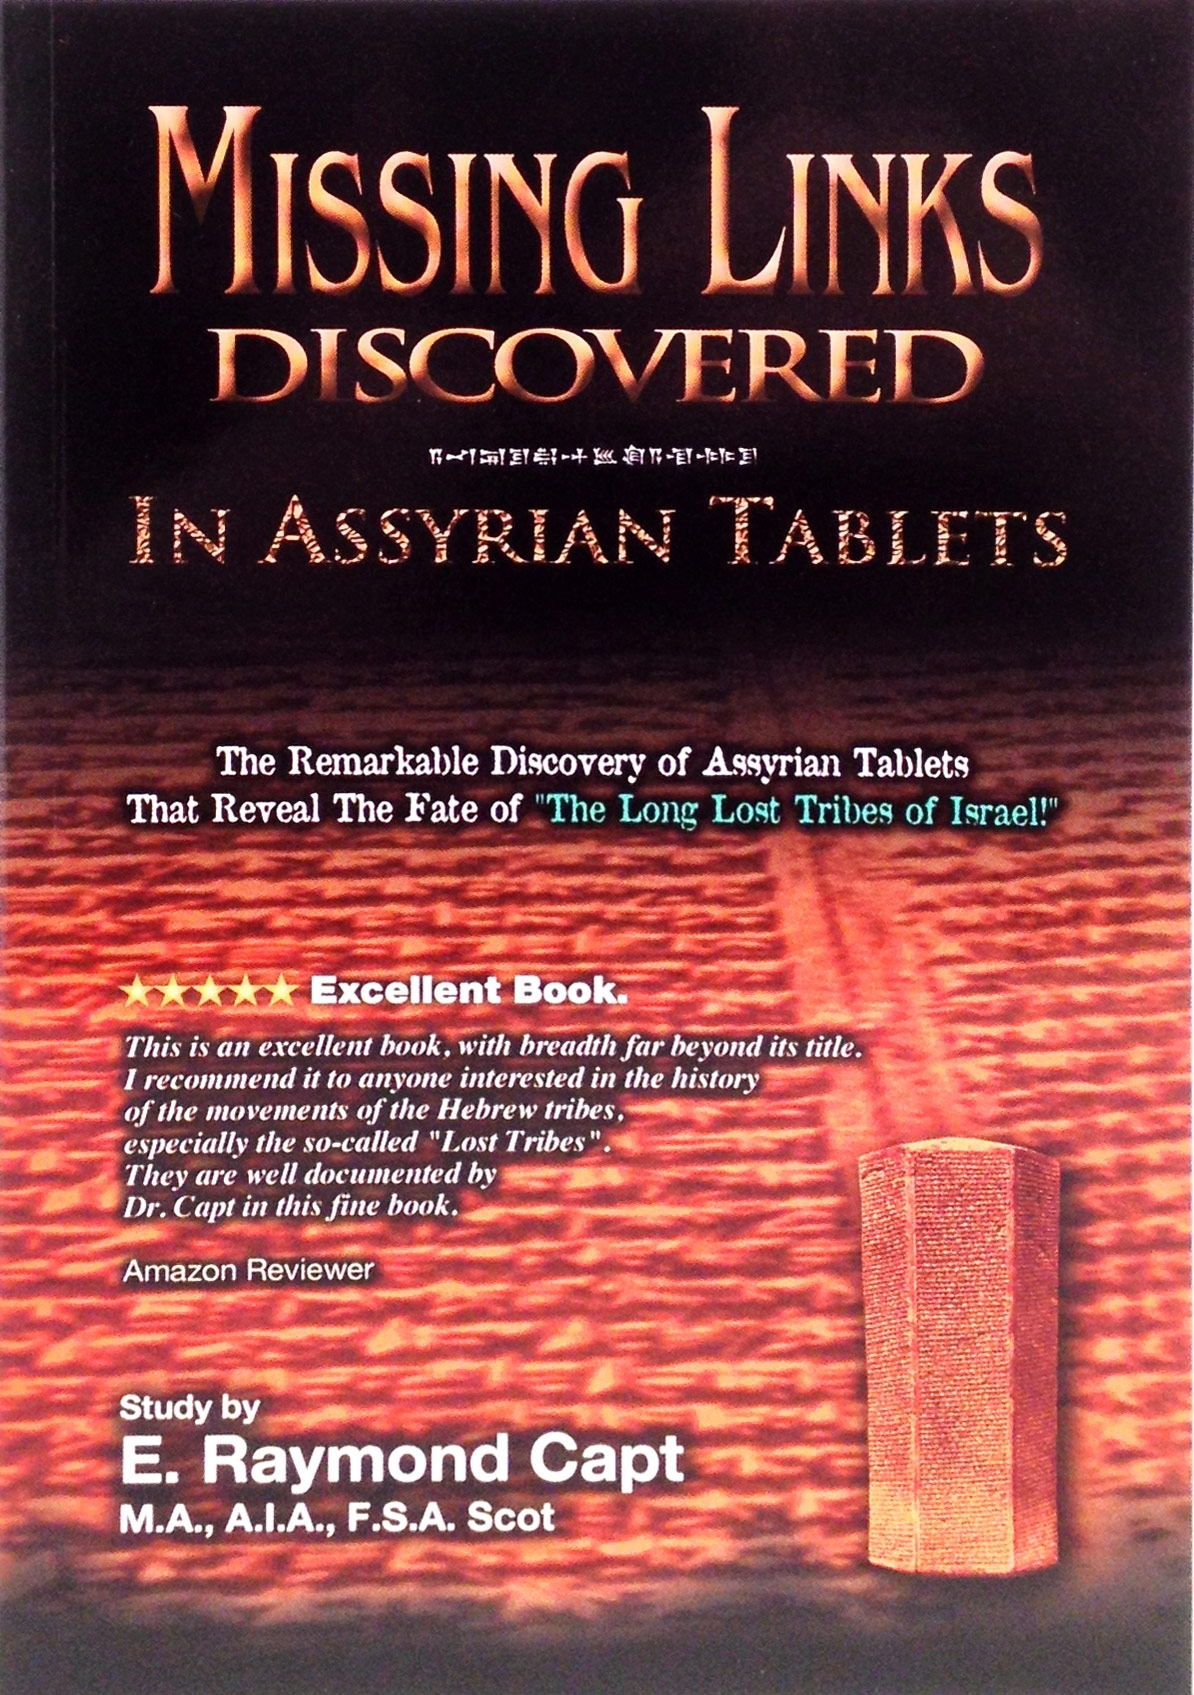 Missing Links Discovered In Assyrian Tablets [Capt] ***THE BEST BOOK - Lost Tribes!